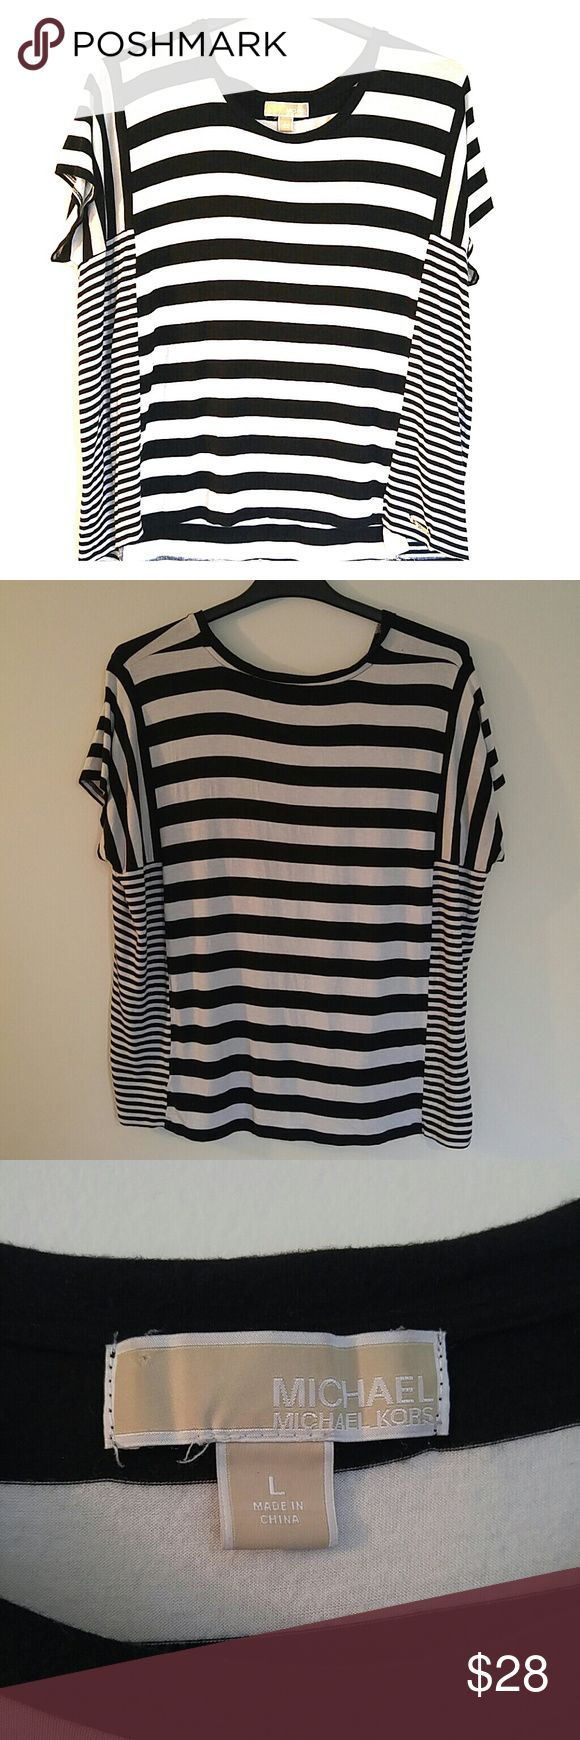 Michael Kors Loose t-shirt Worn only a few times and it fits beautifully on the body. The blocks of smaller stripes give a slimming illusion. Also extremely comfortable! Michael Kors Tops